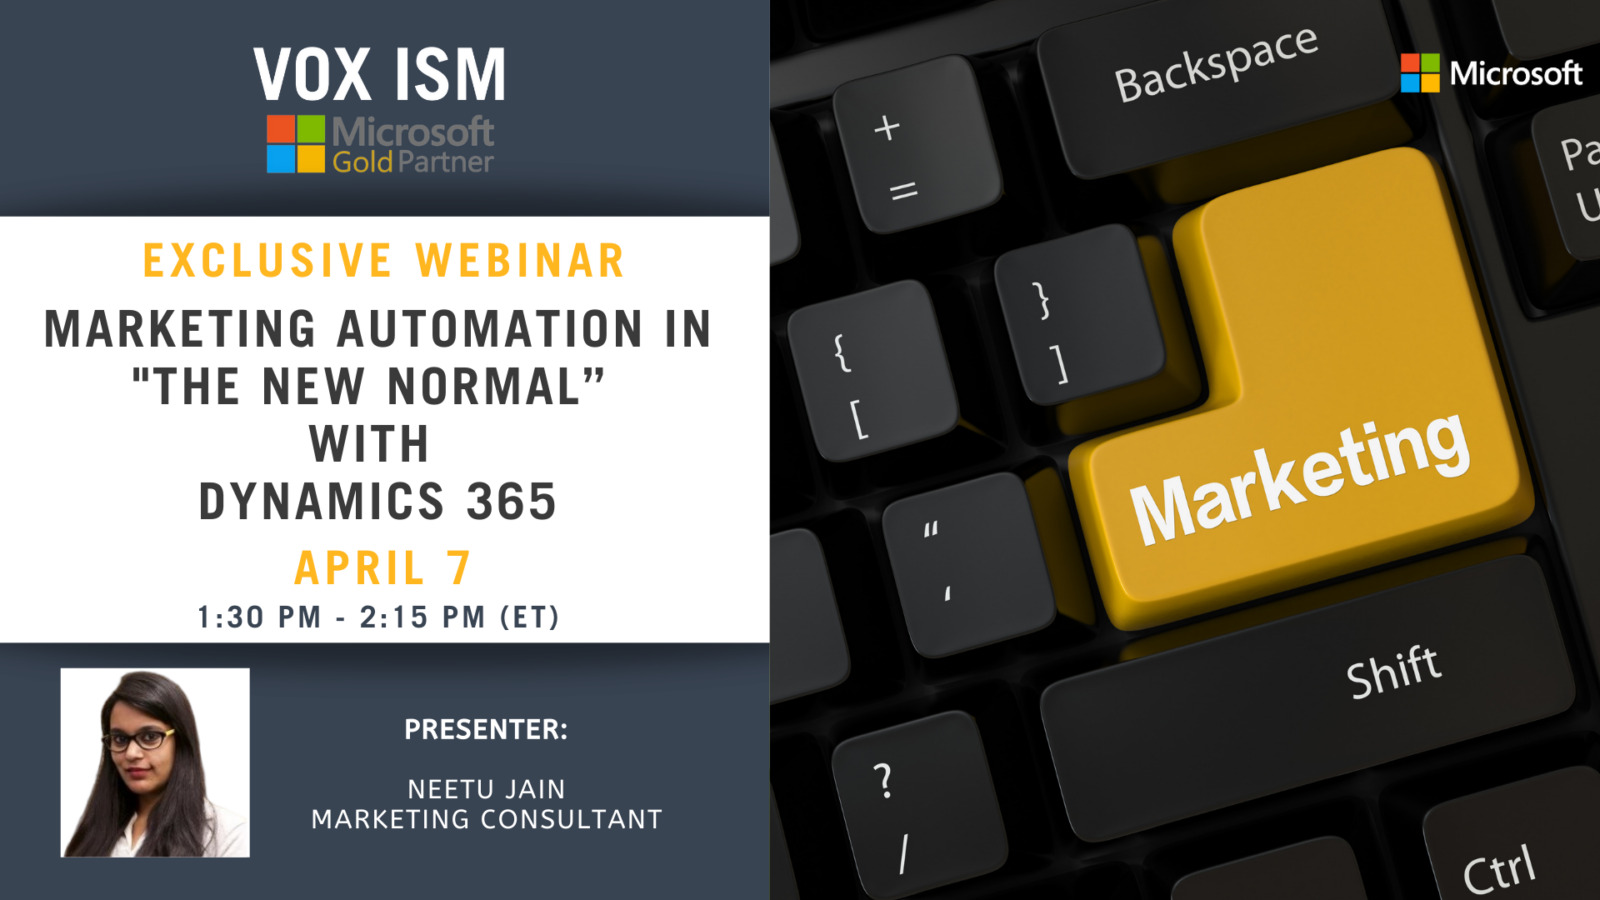 """Marketing Automation in the """"New Normal"""" with Dynamics 365 - April 7 - Webinar"""